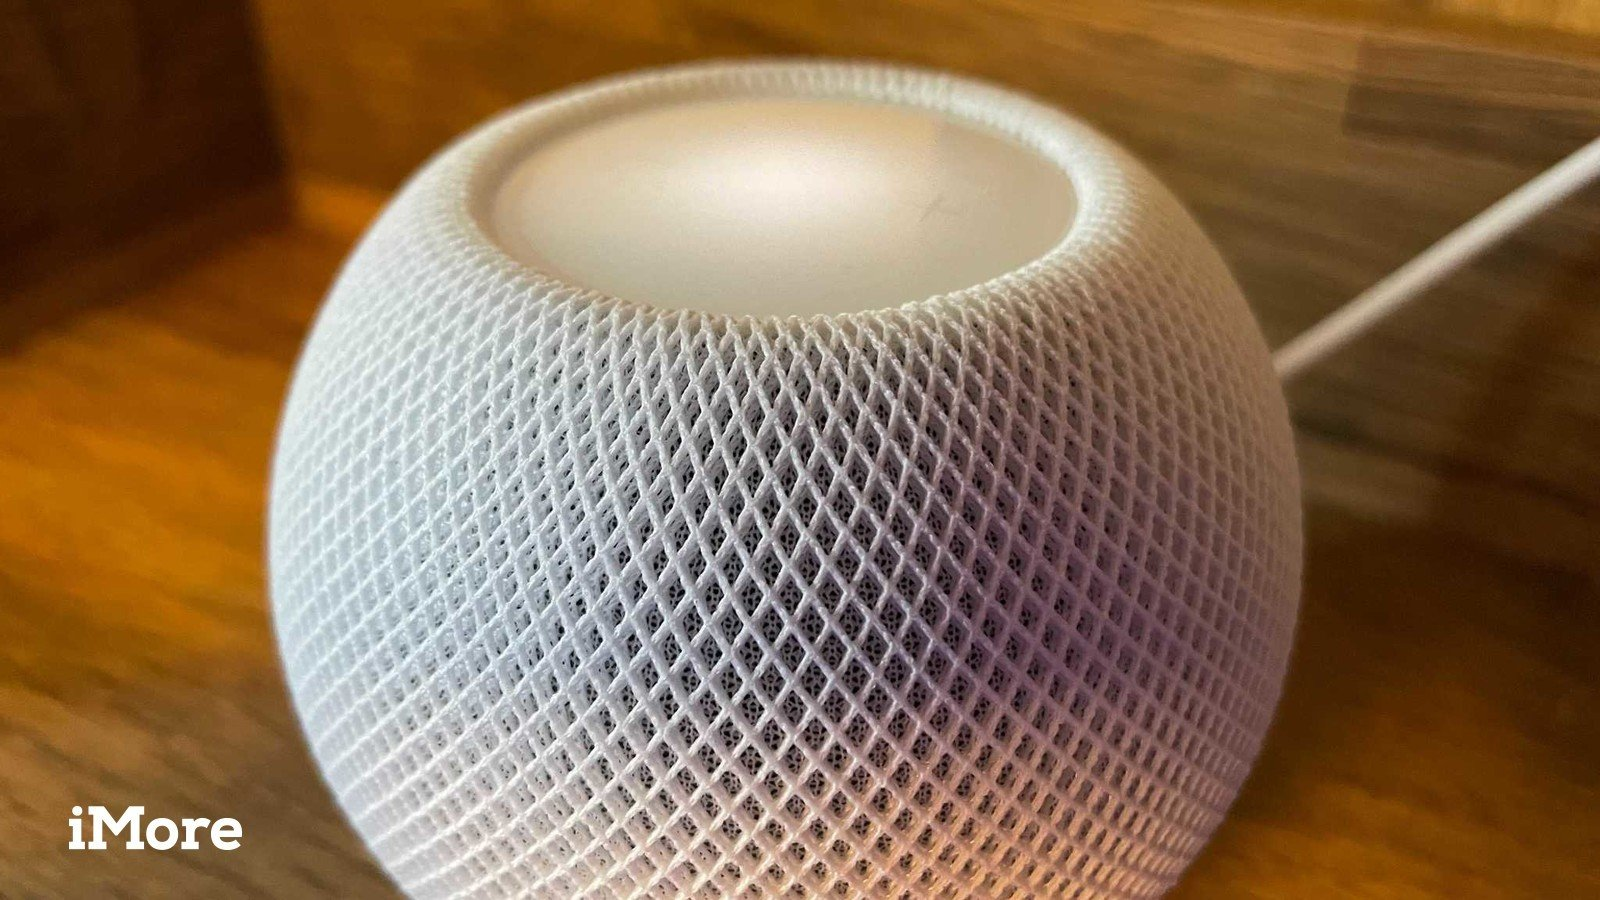 Homepod Mini Review